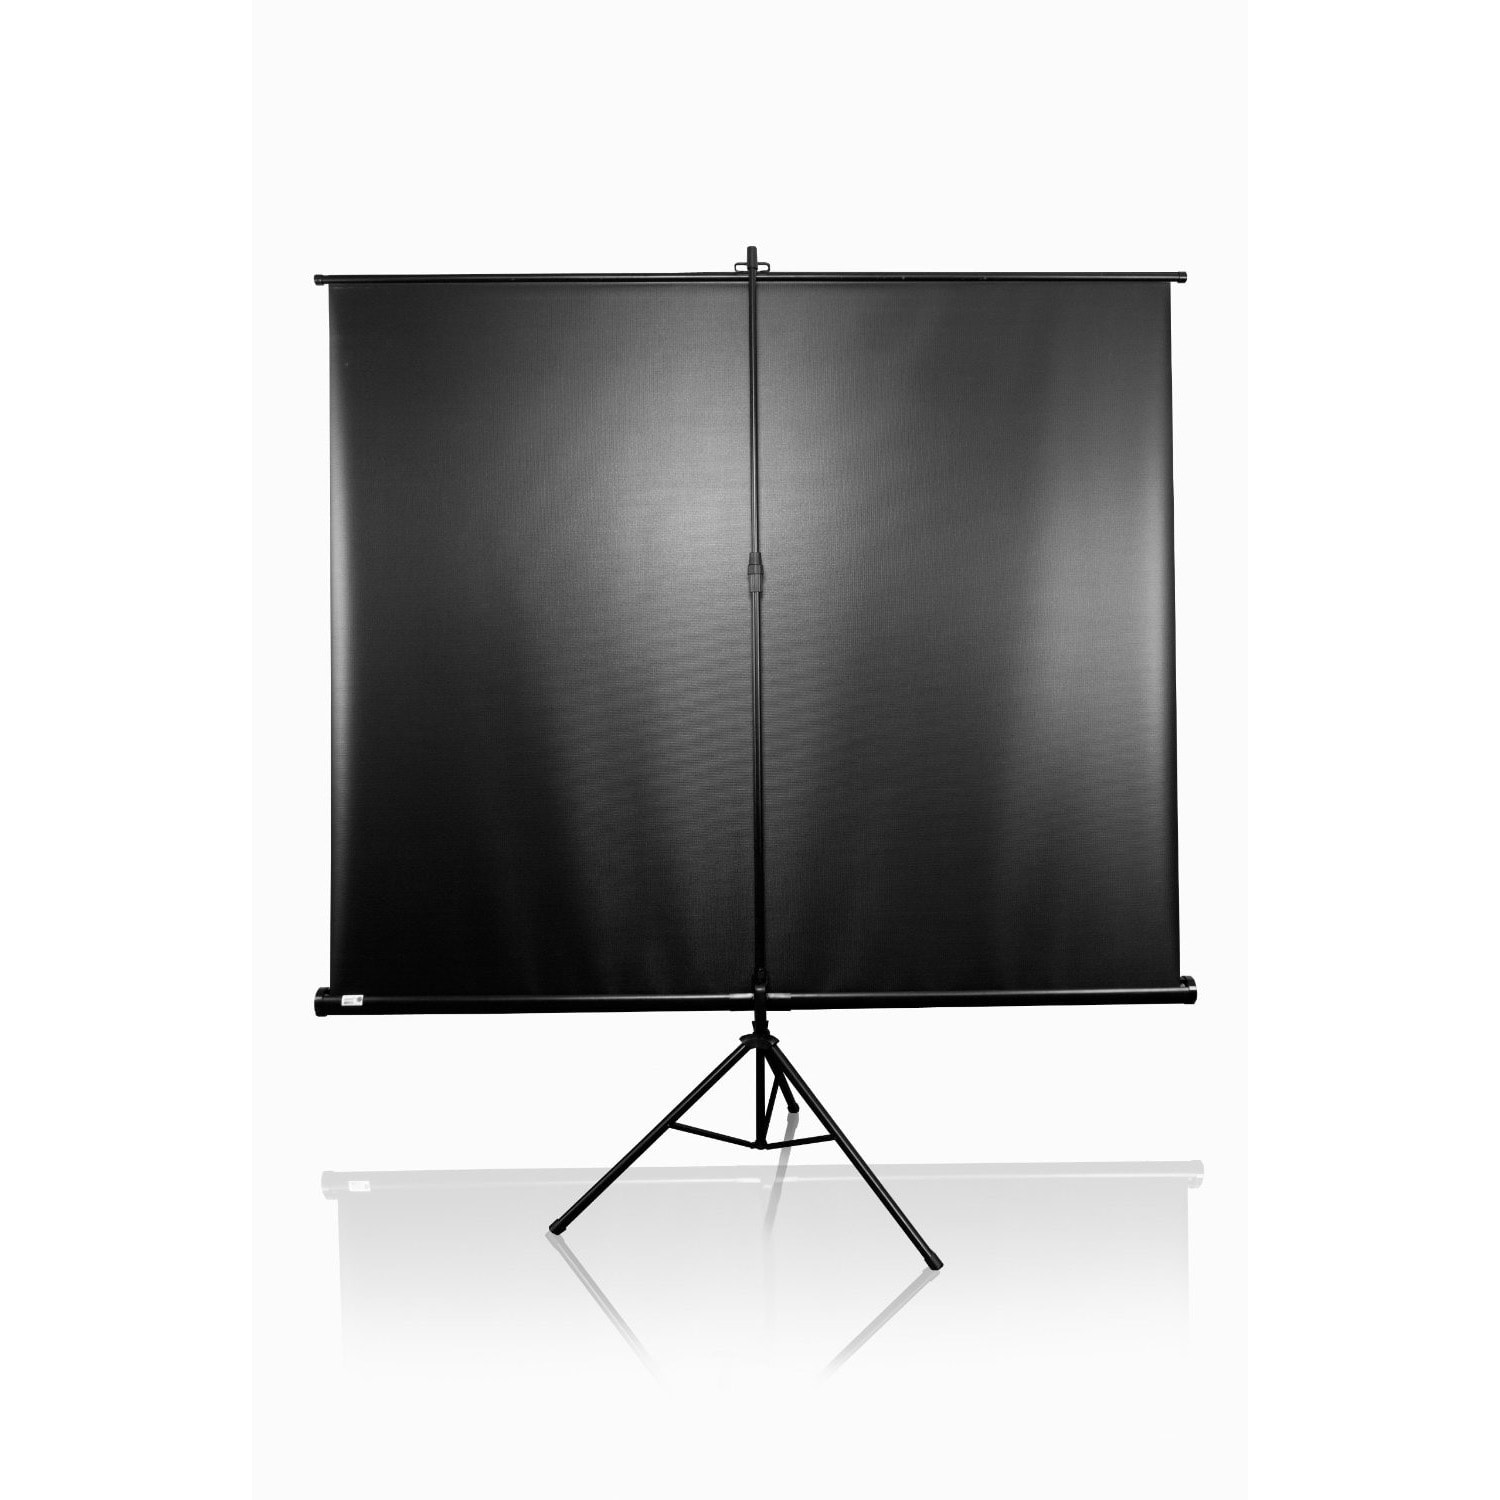 Elite Screens Écran de Projection Tripod T99UWS1 (T99UWS1) - Achat / Vente Access. Audio-Photo-Vidéo sur Cybertek.fr - 2